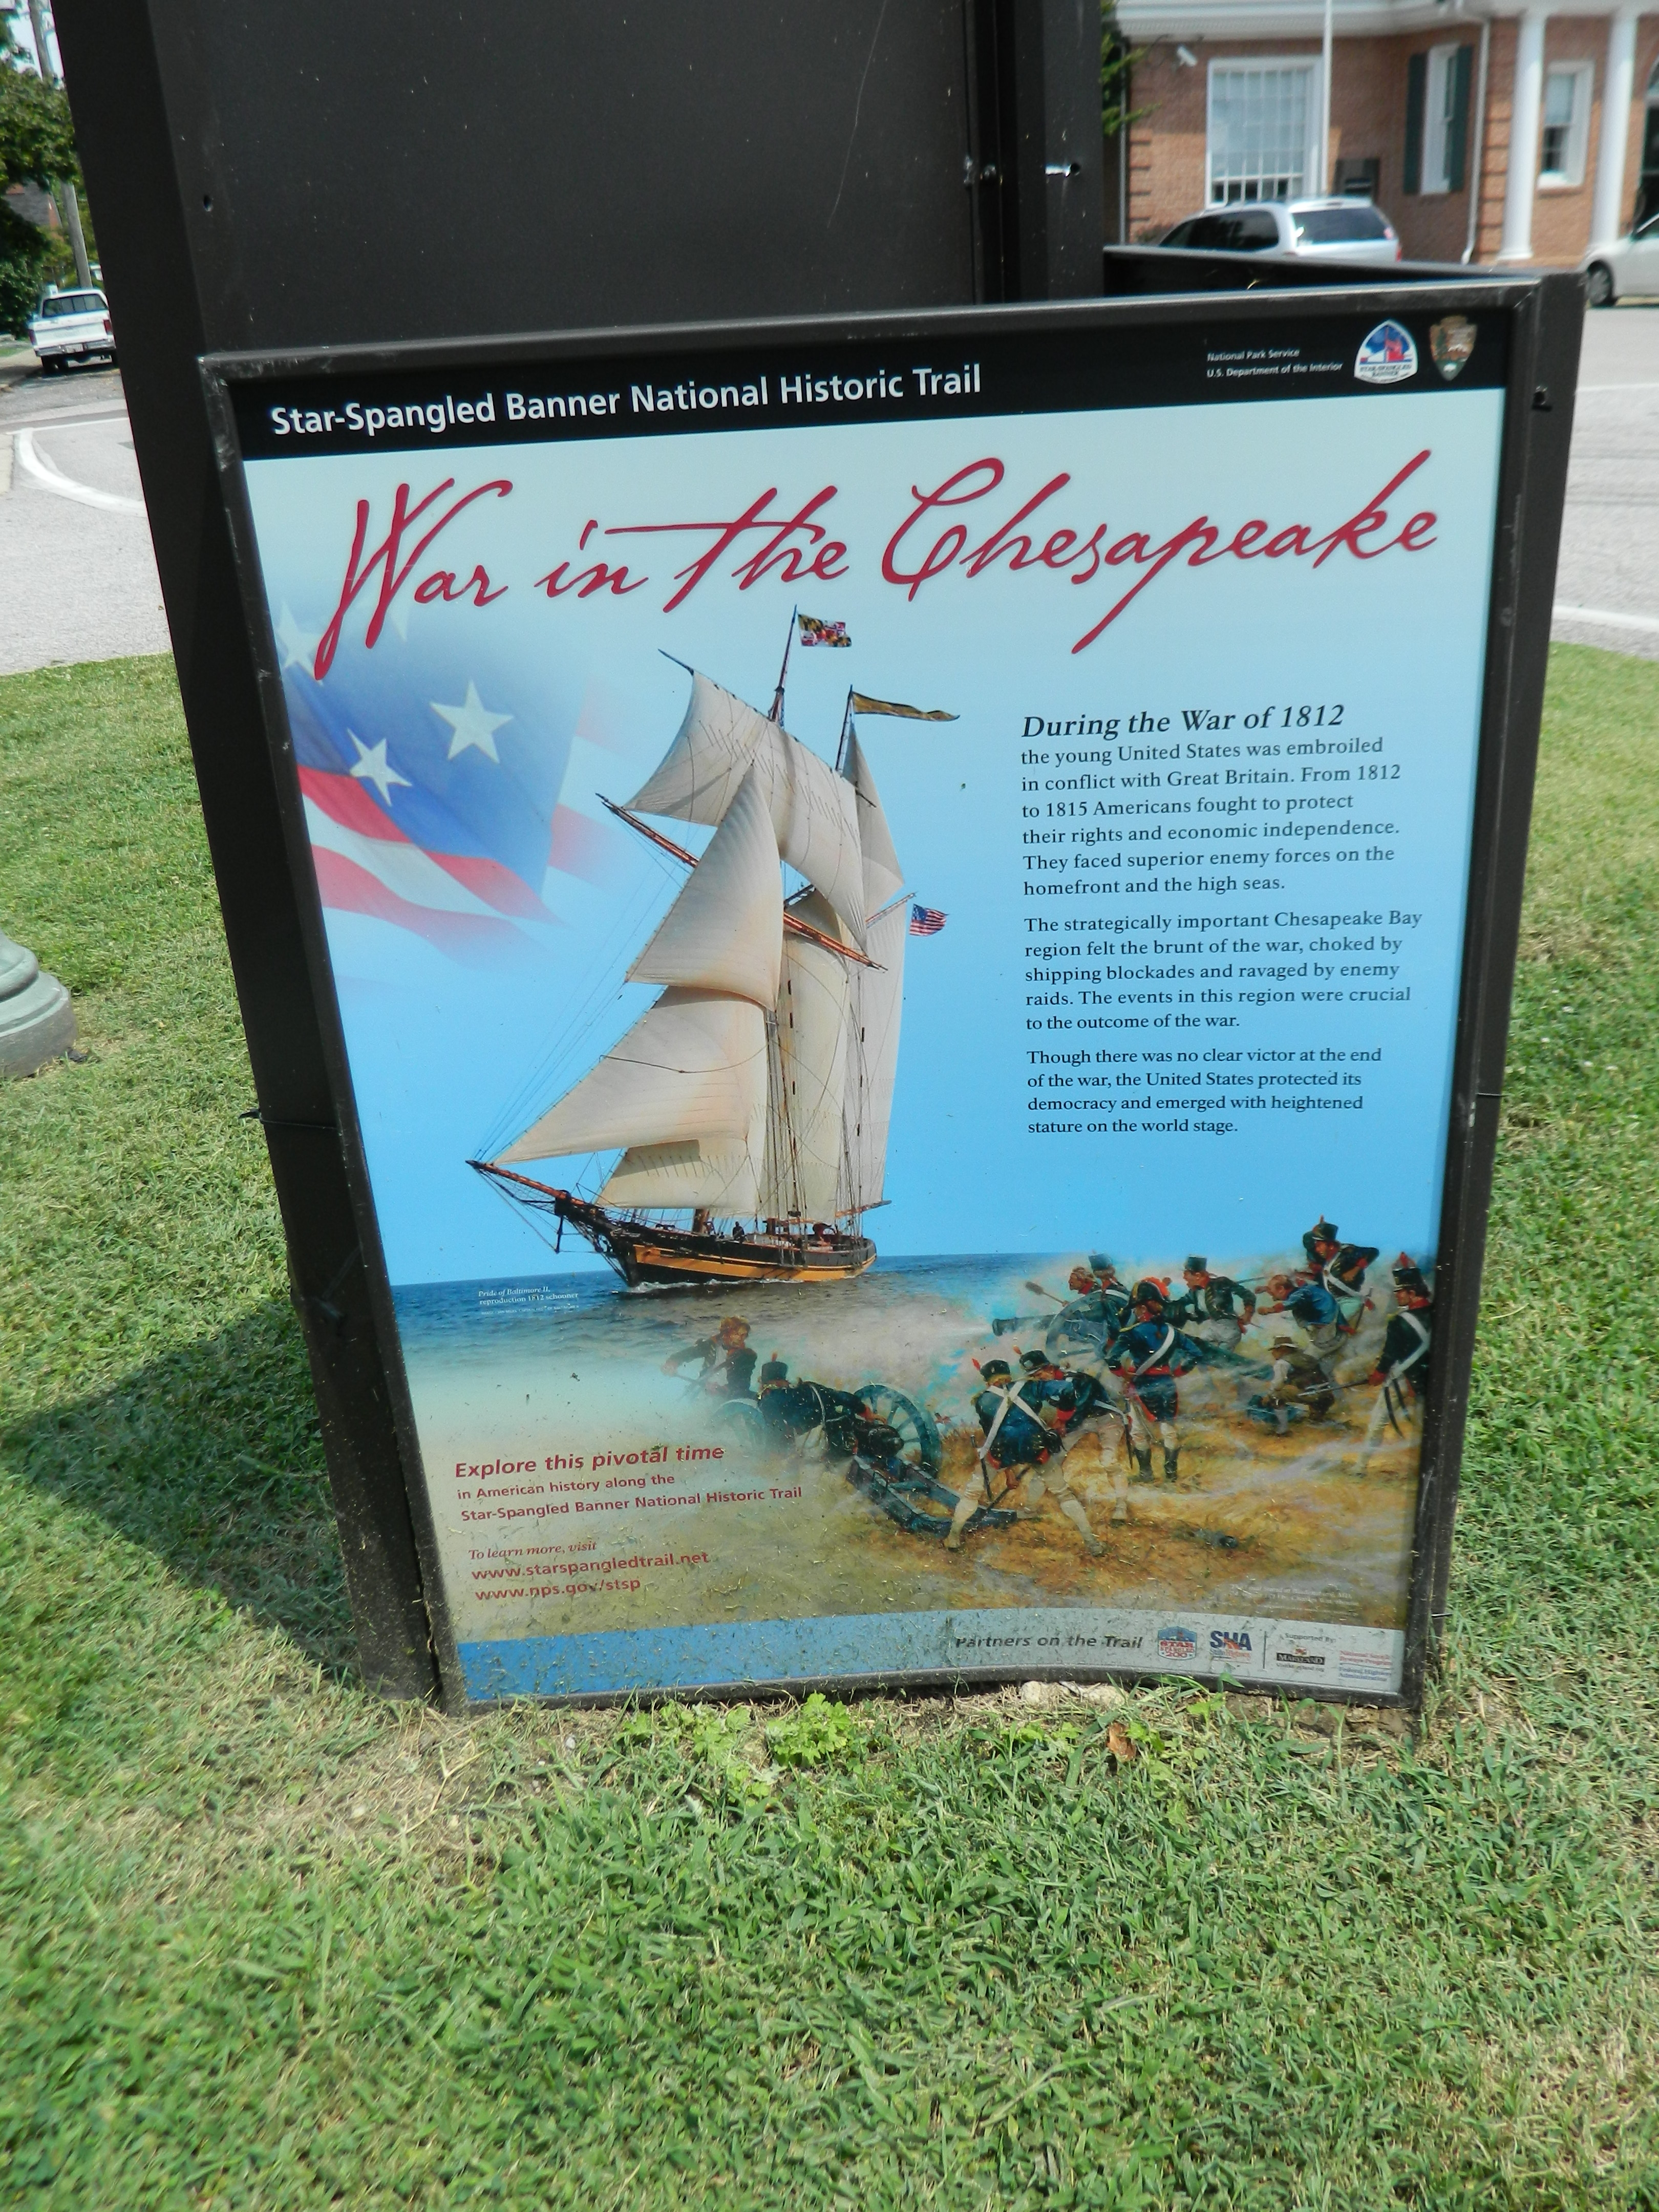 War in the Chesapeake Marker